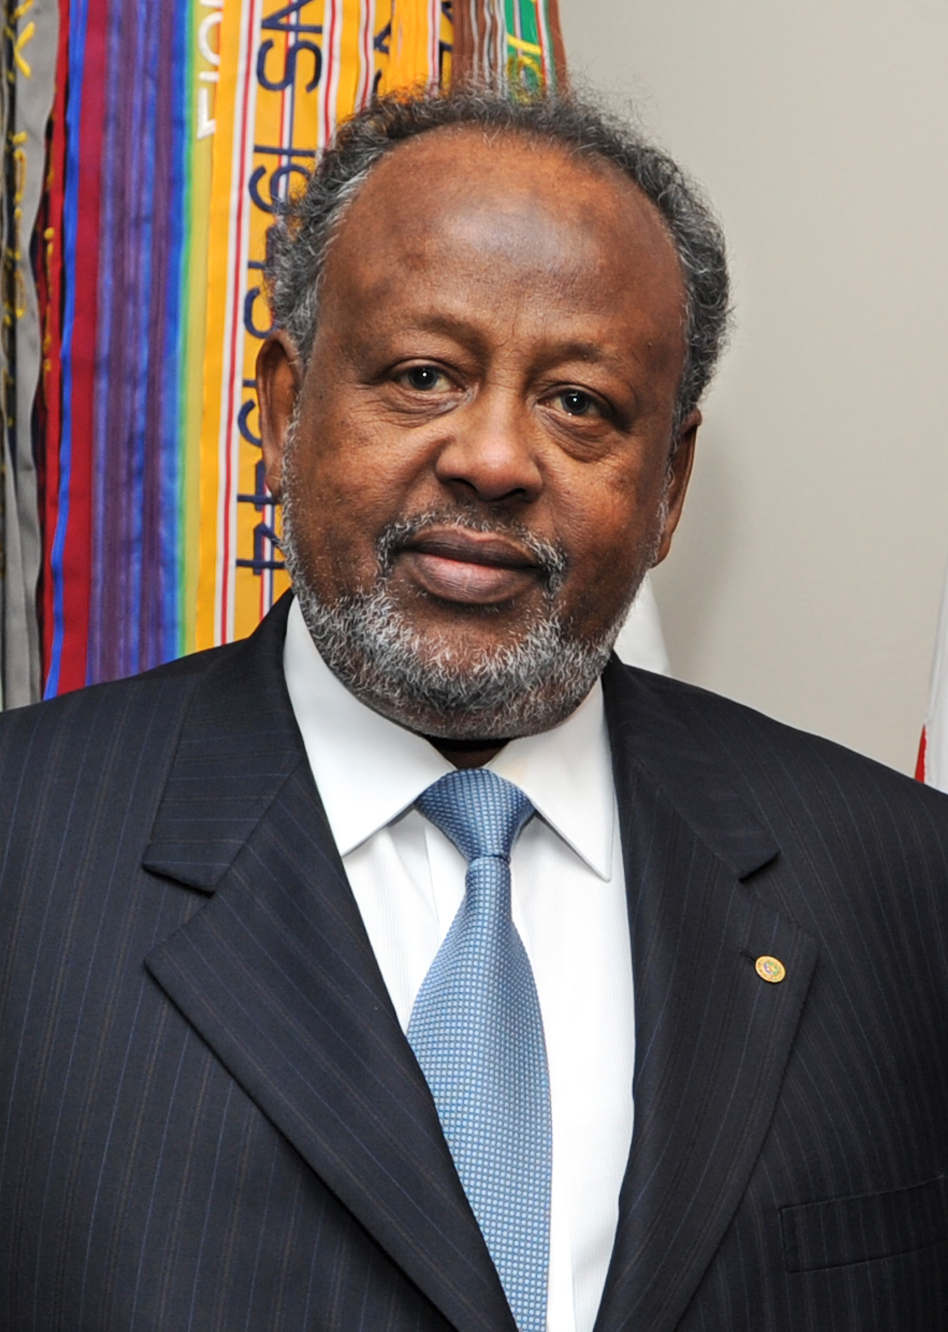 Djibouti president kicks off Beijing visit as China expands interest in Africa